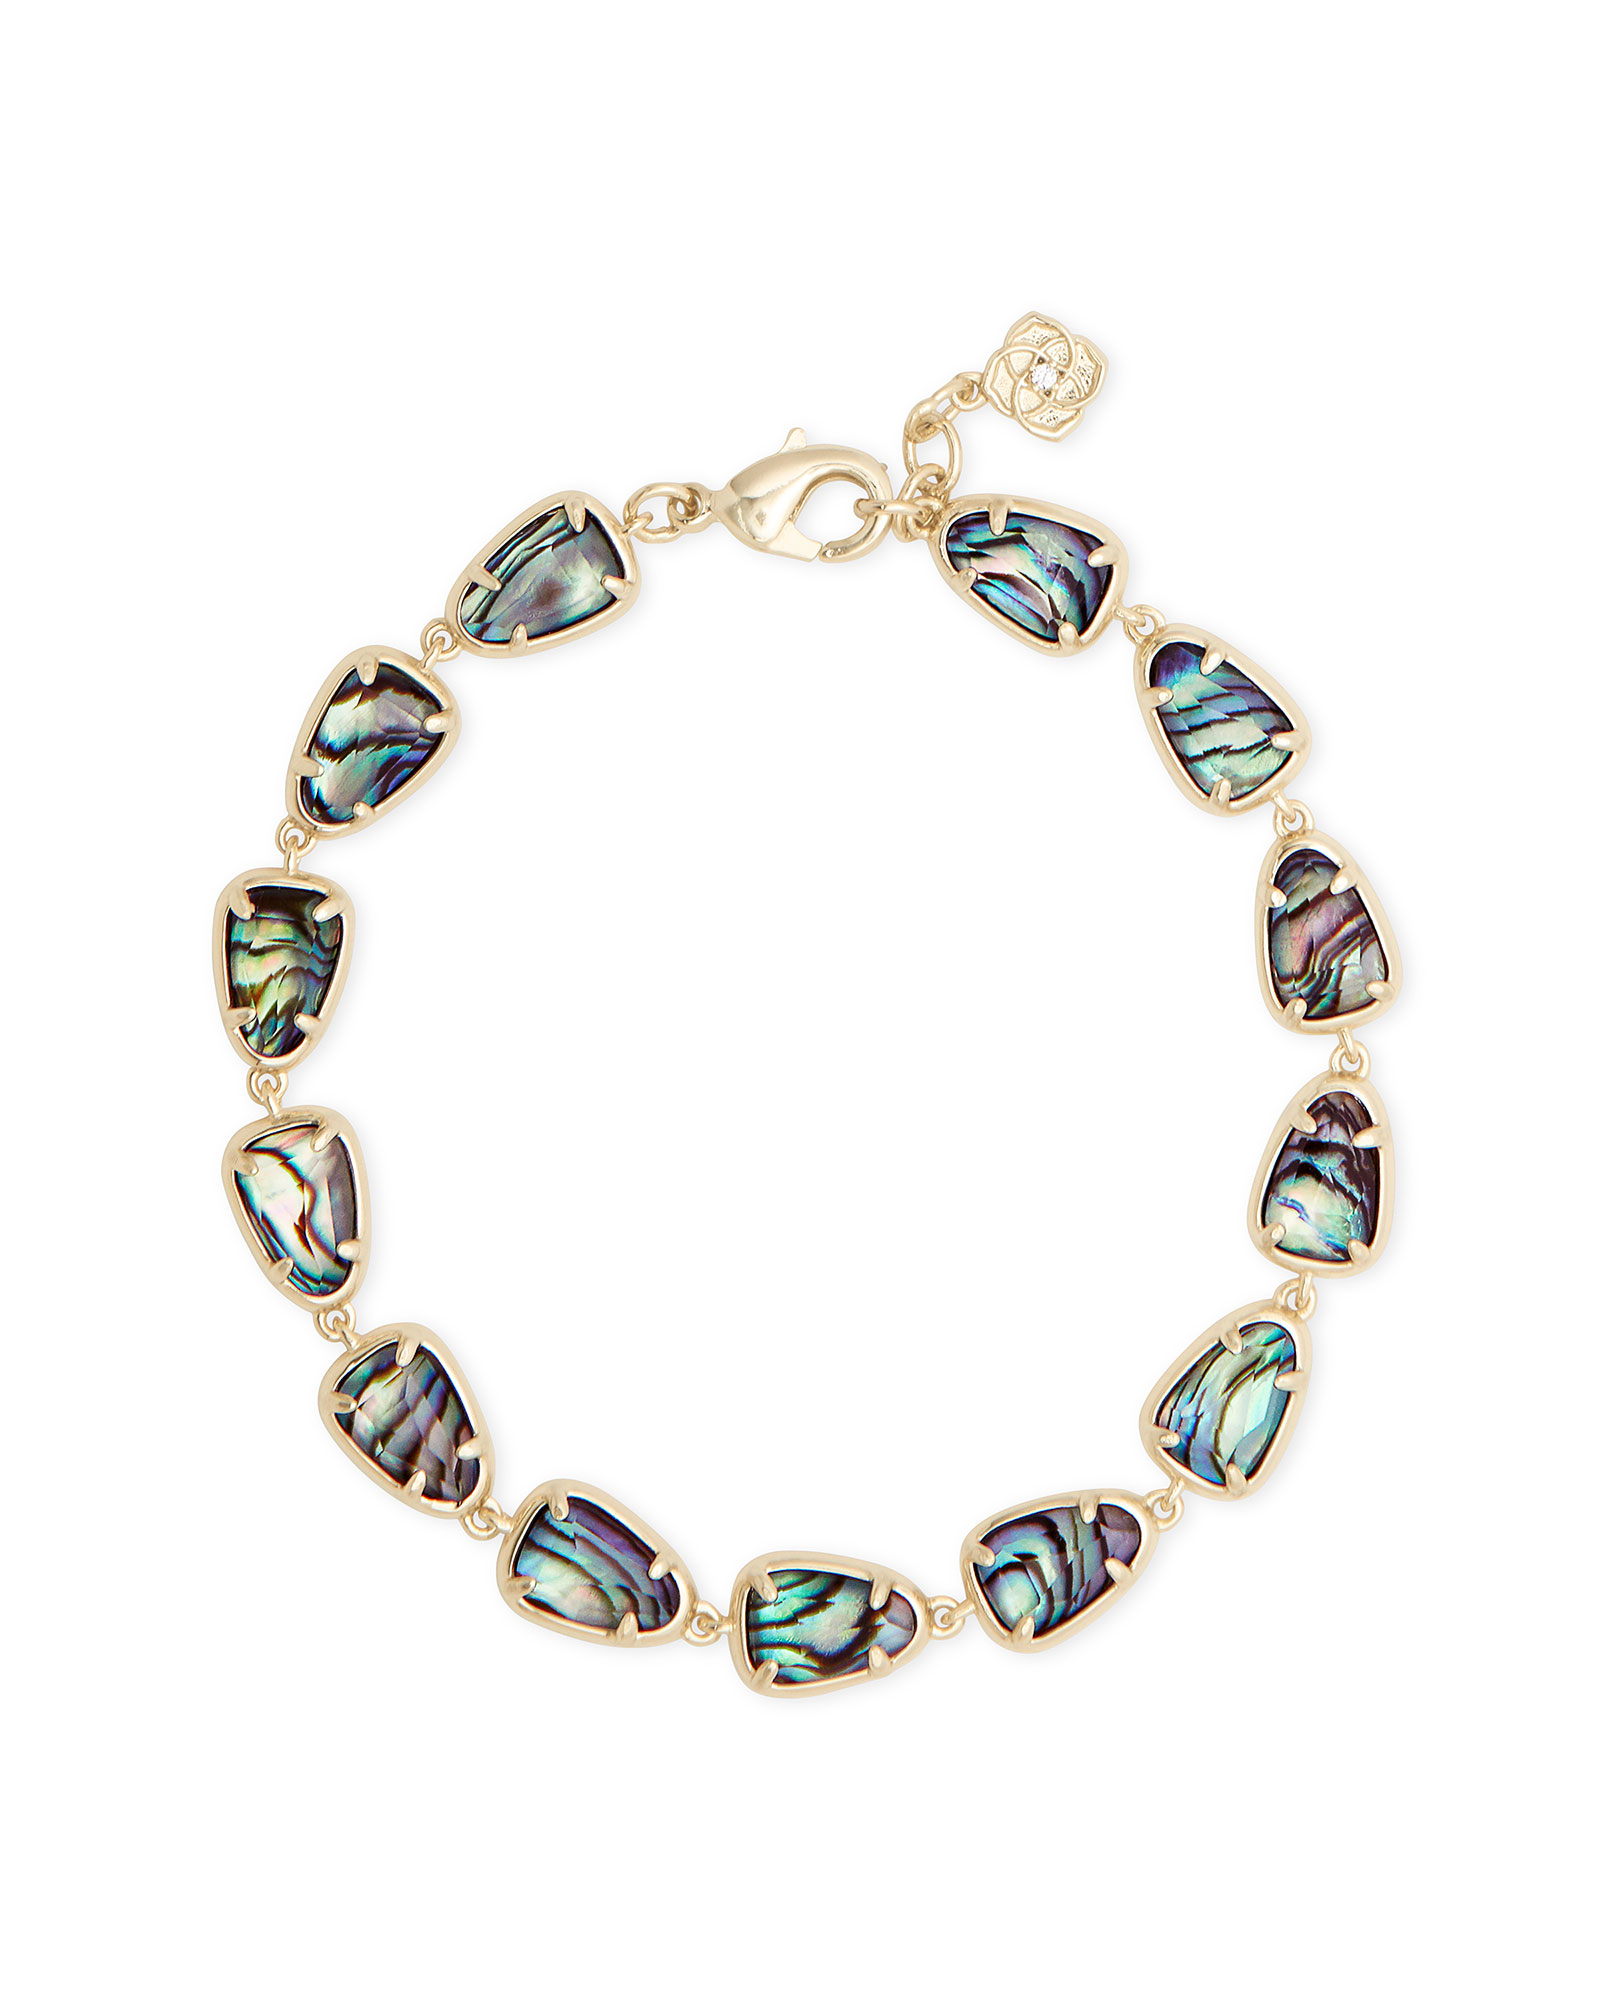 Susanna Gold Link Bracelet in Abalone Shell